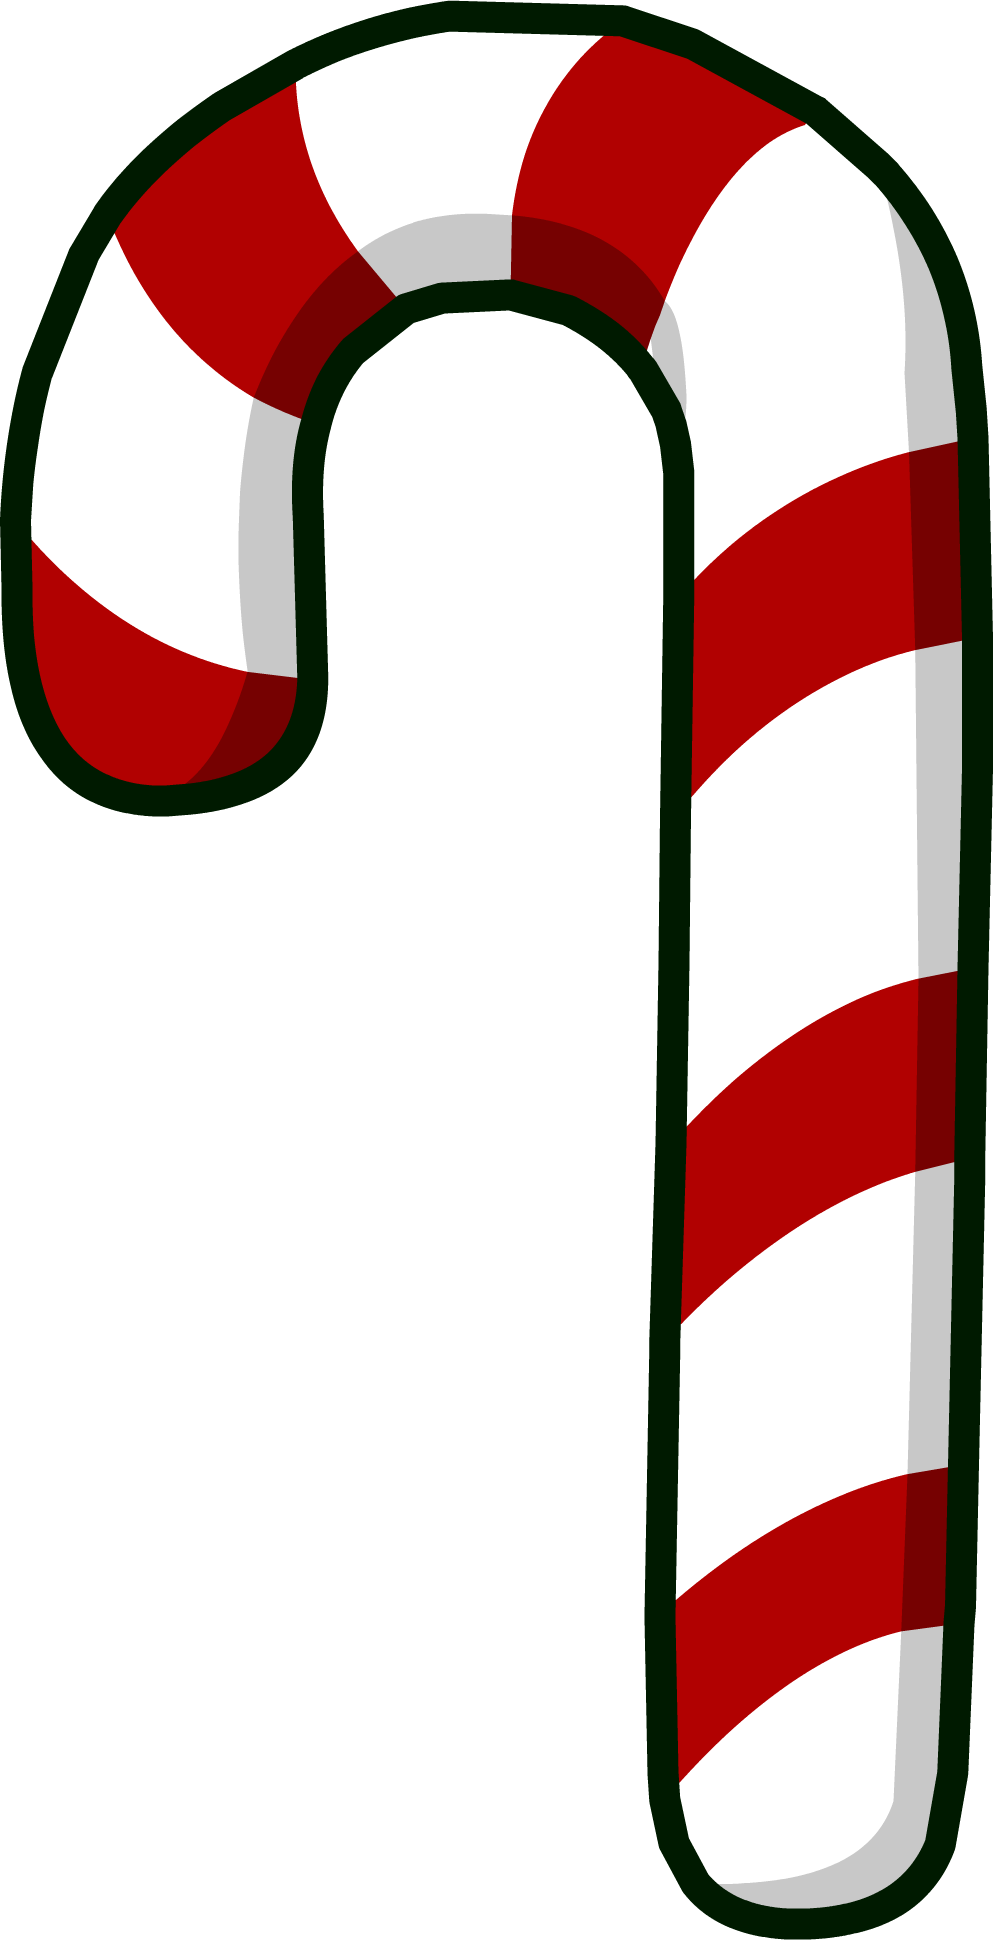 Image giant candy cane. Excited clipart transparent background